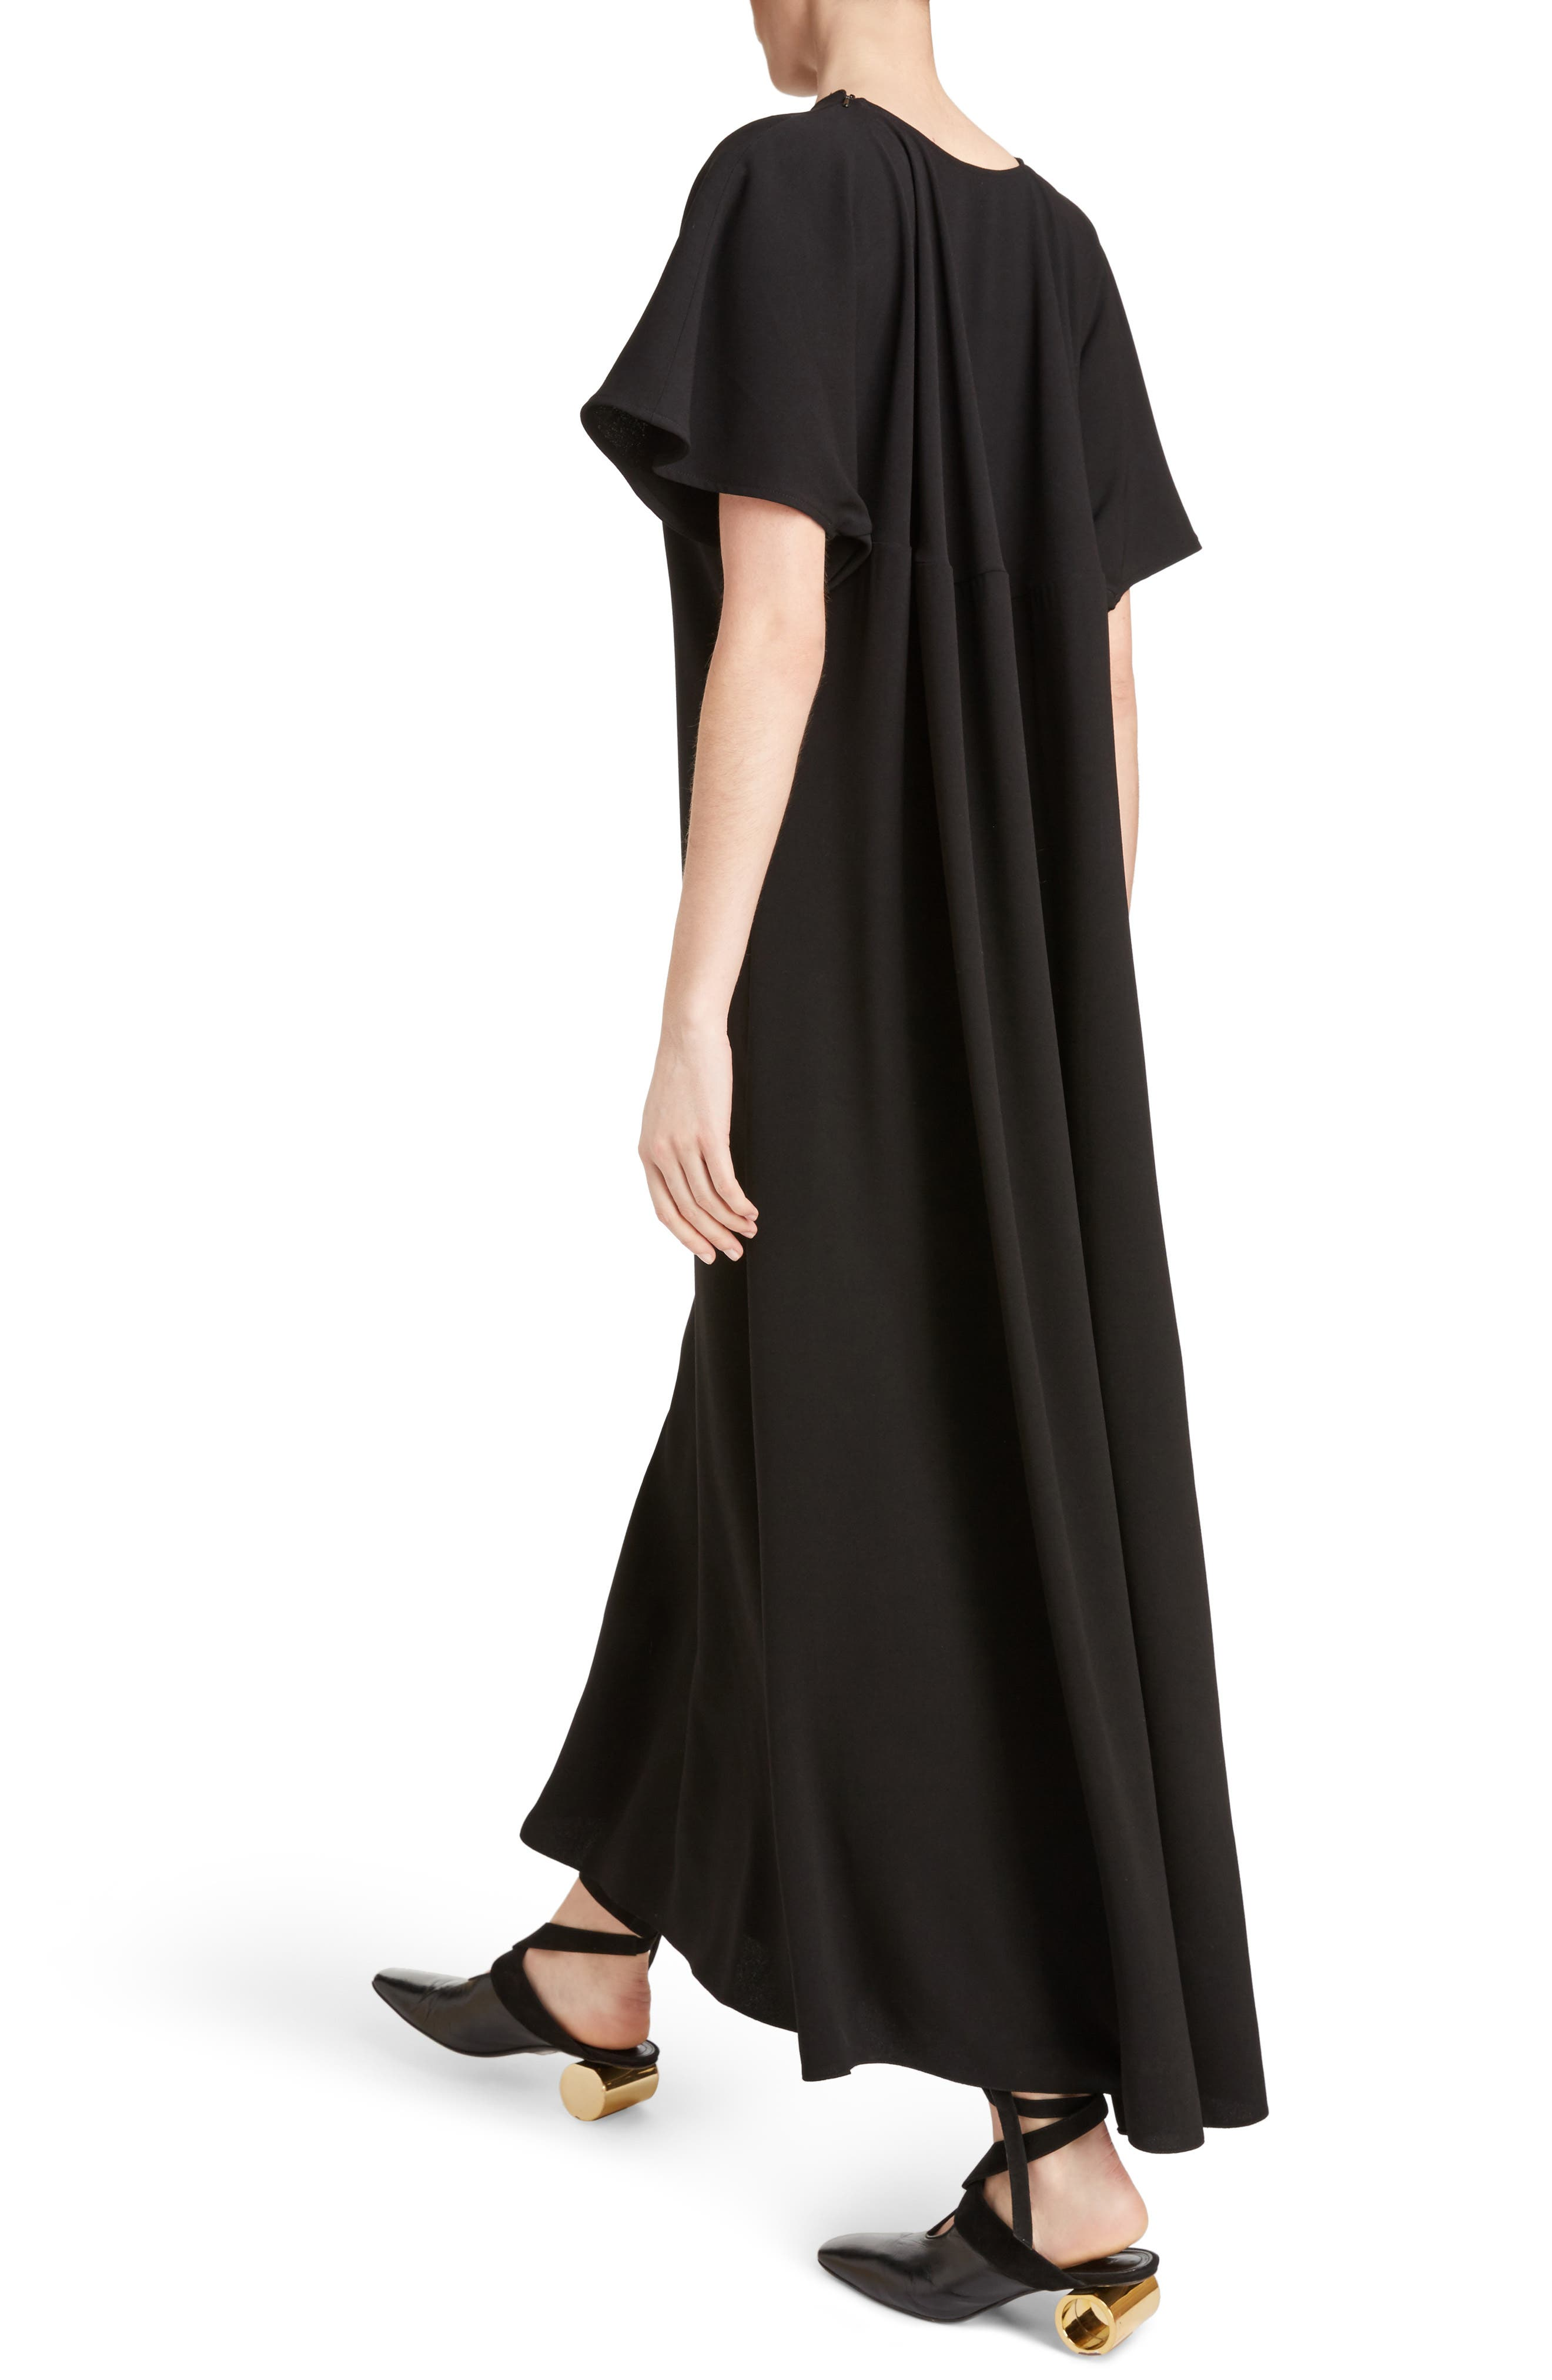 J.W.ANDERSON Cap Sleeve Maxi Dress,                             Alternate thumbnail 4, color,                             Black